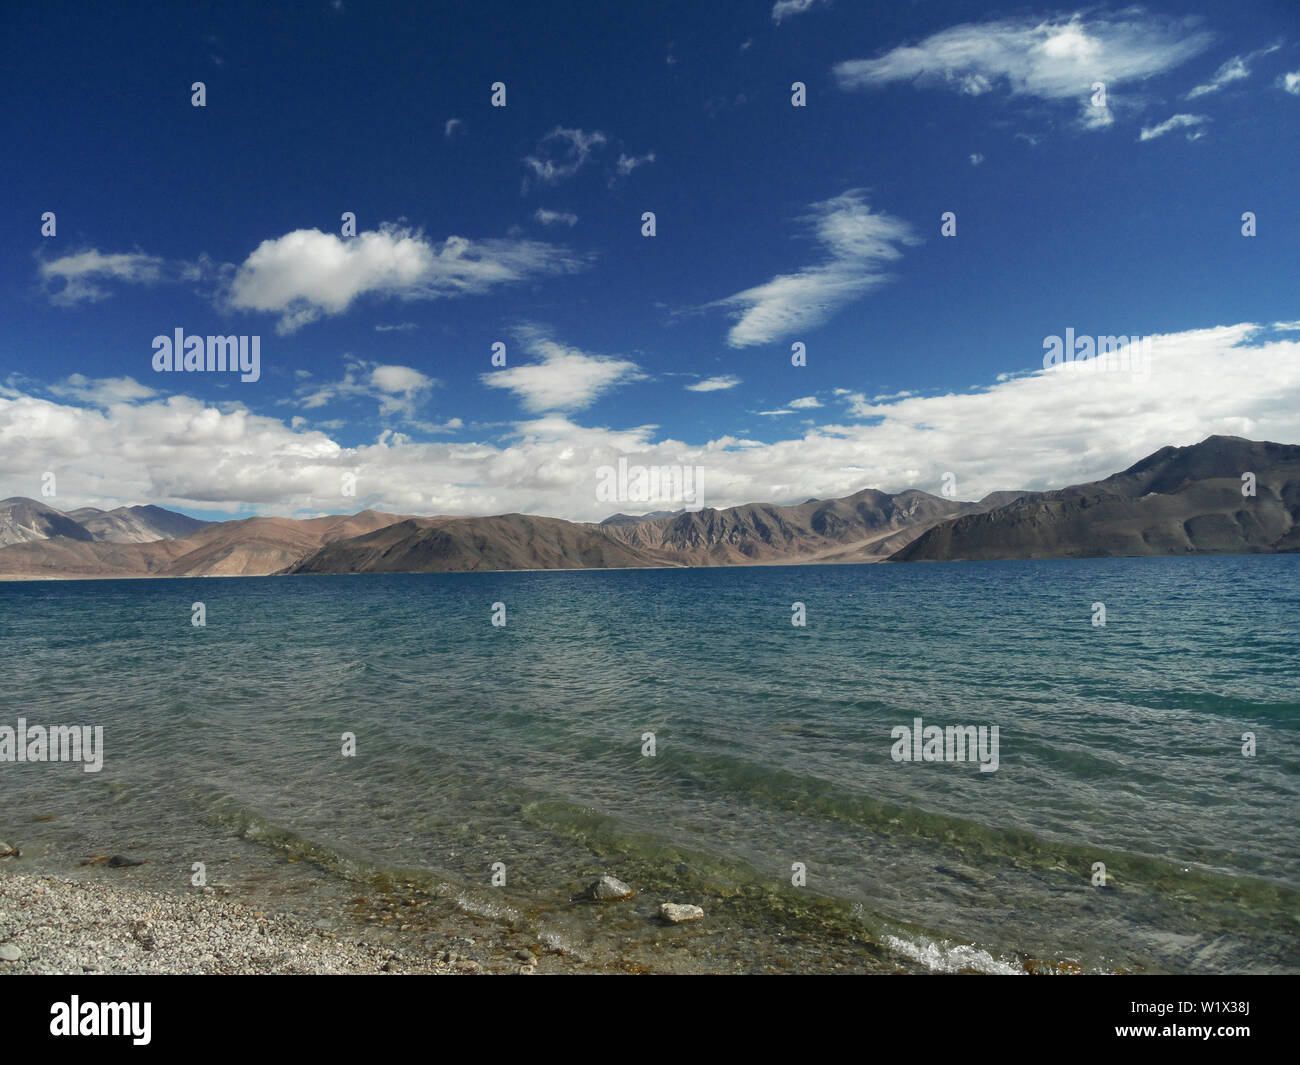 Lake in the sky: Pangong Lake, Ladakh india, in the early morning busking in the sunlight. - Stock Image